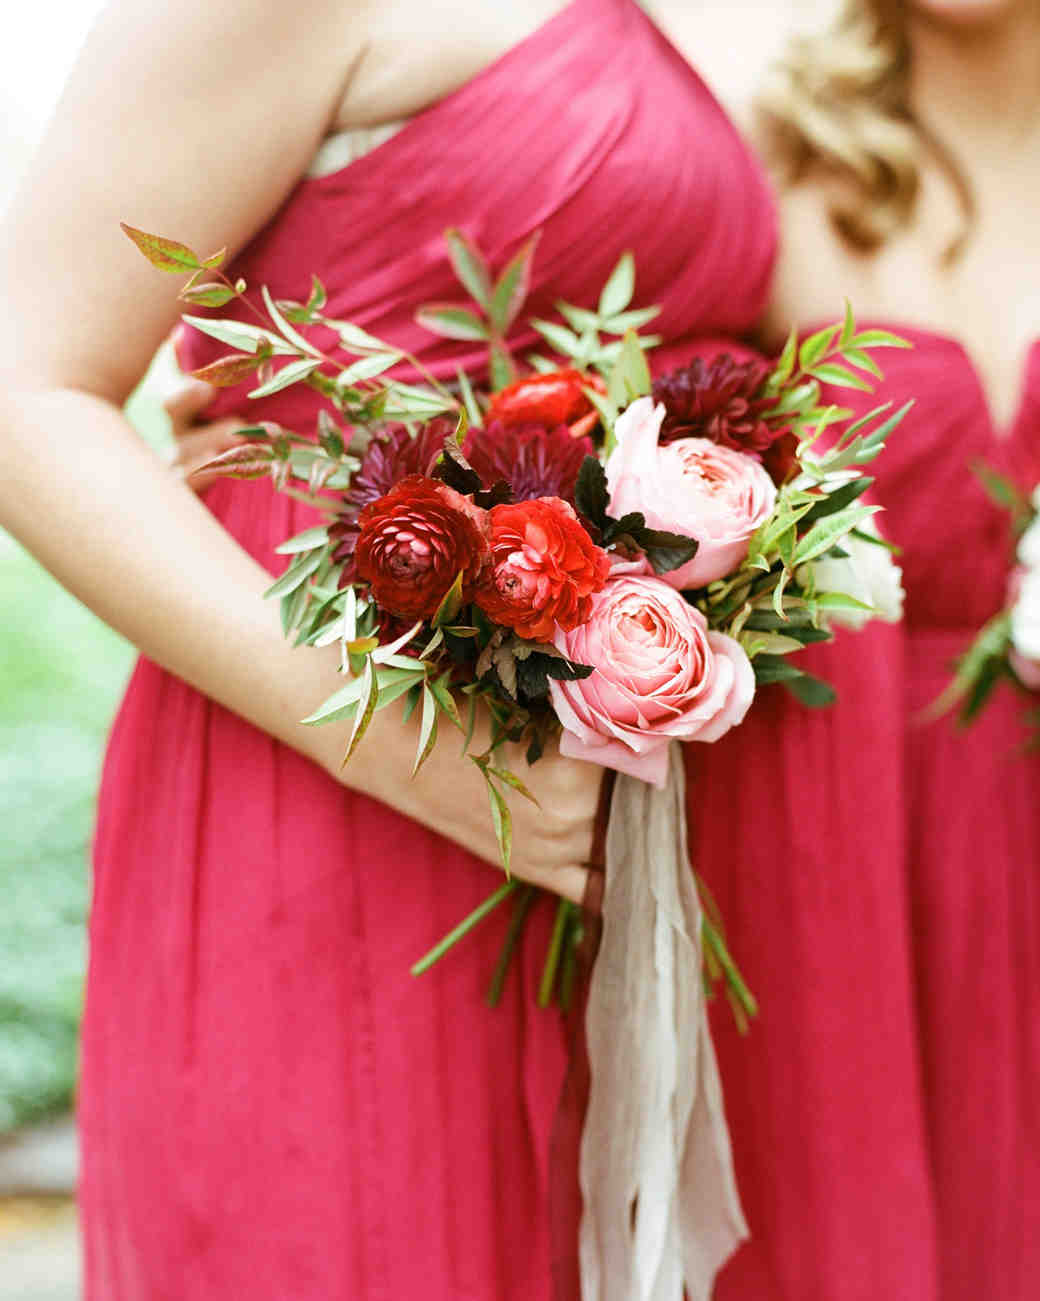 38 Ideas For Your Bridesmaids Bouquets